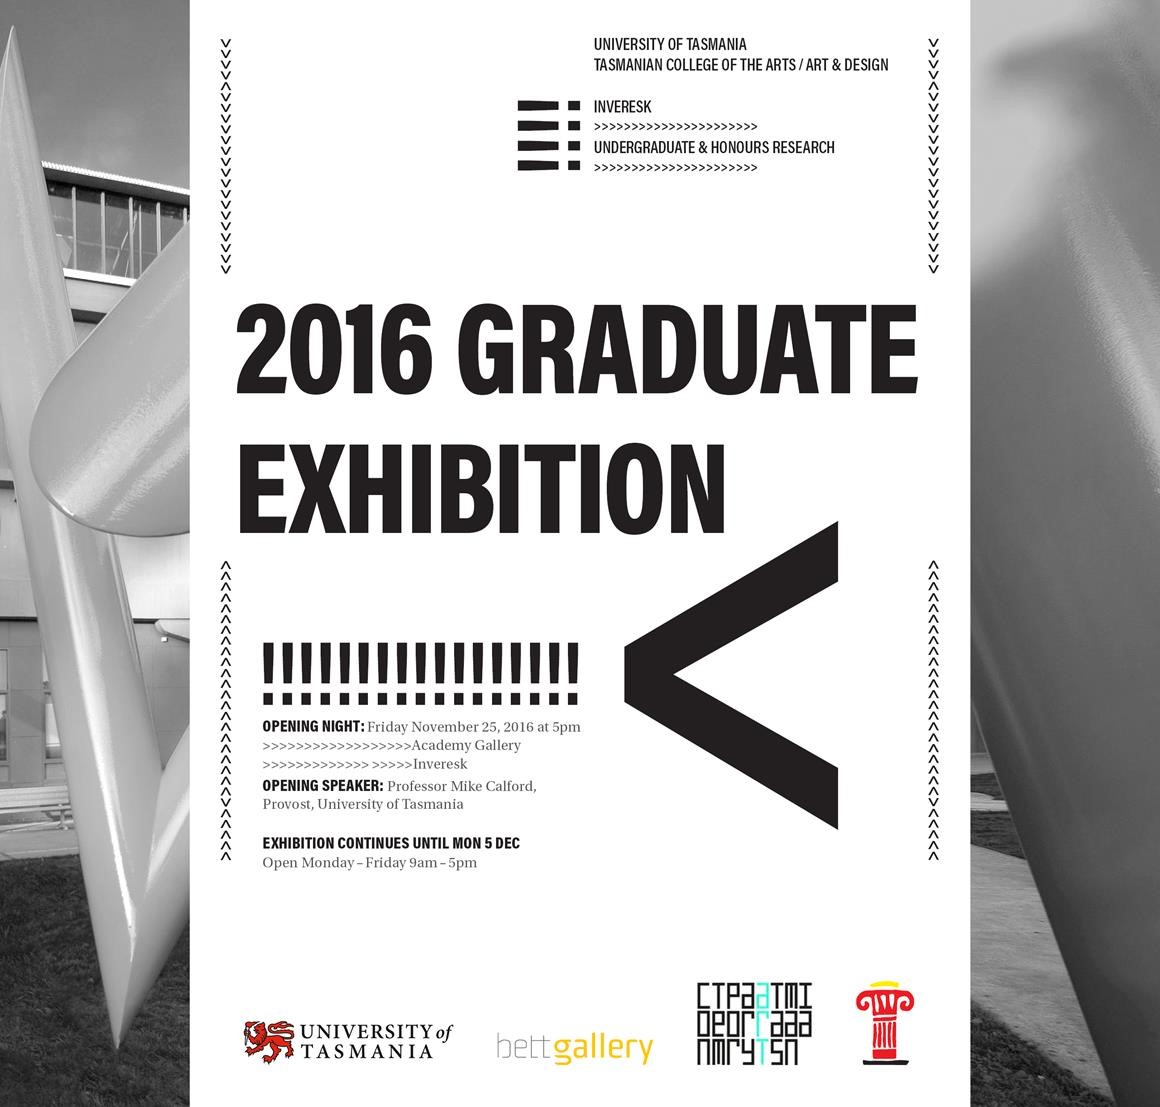 2016 Graduate Exhibition - brought to you by the University of Tasmania, Bett Gallery, Contemporary Art Tasmania, and the Tasmanian University Union